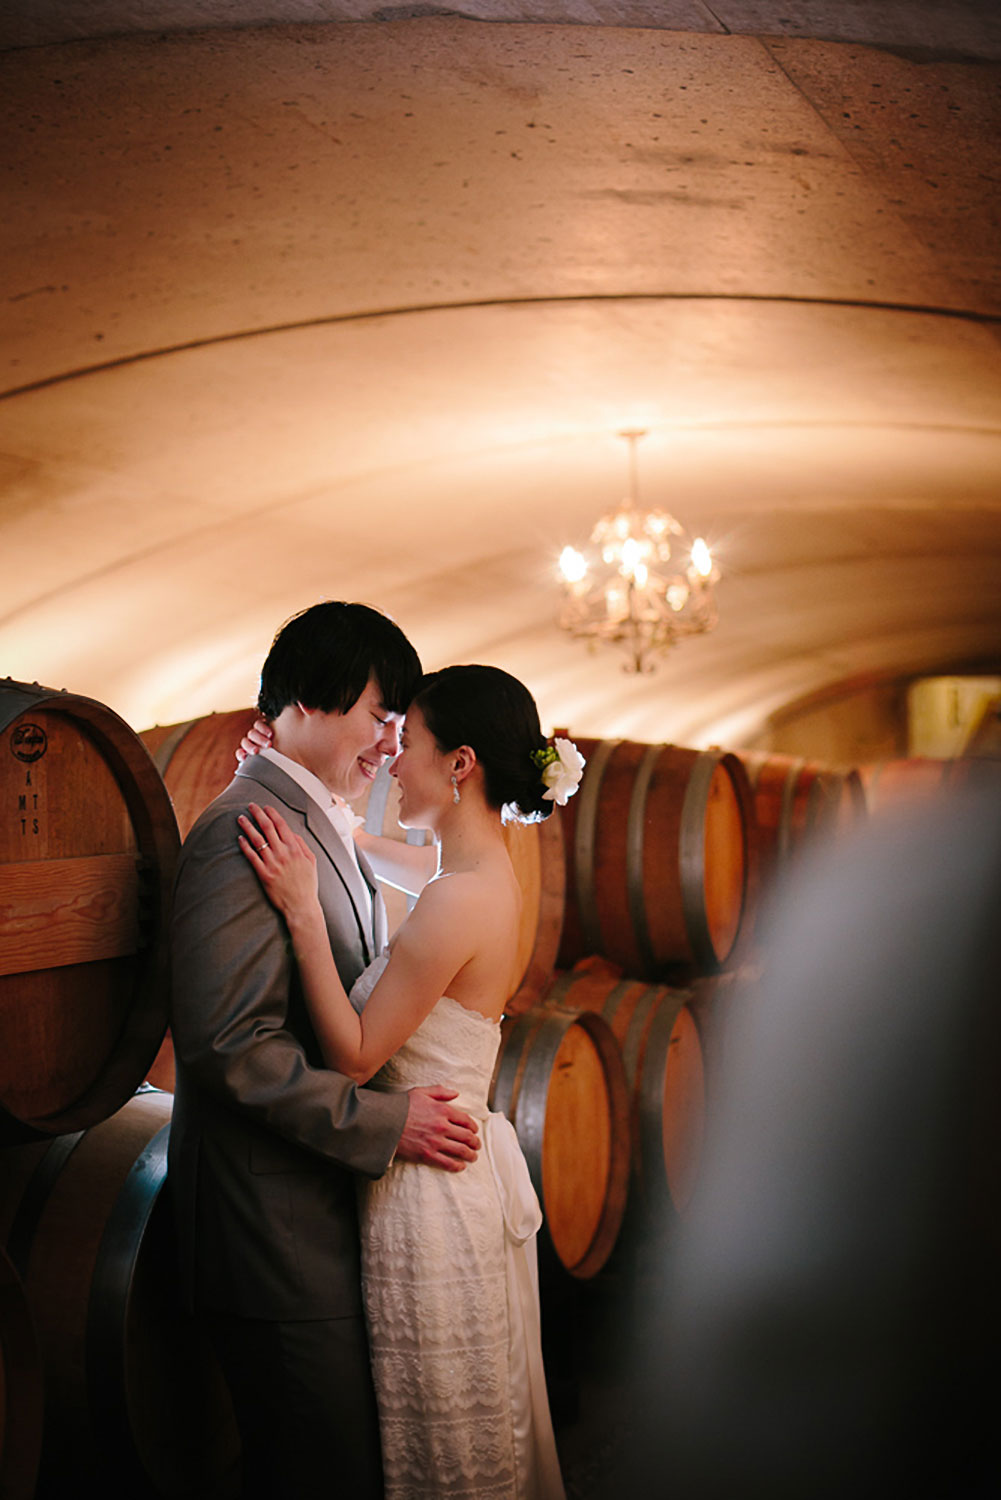 Vineland-Estates-Wedding-Vineyard-Bride-Photo-By-Tamara-Lockwood-Photography-012.jpg